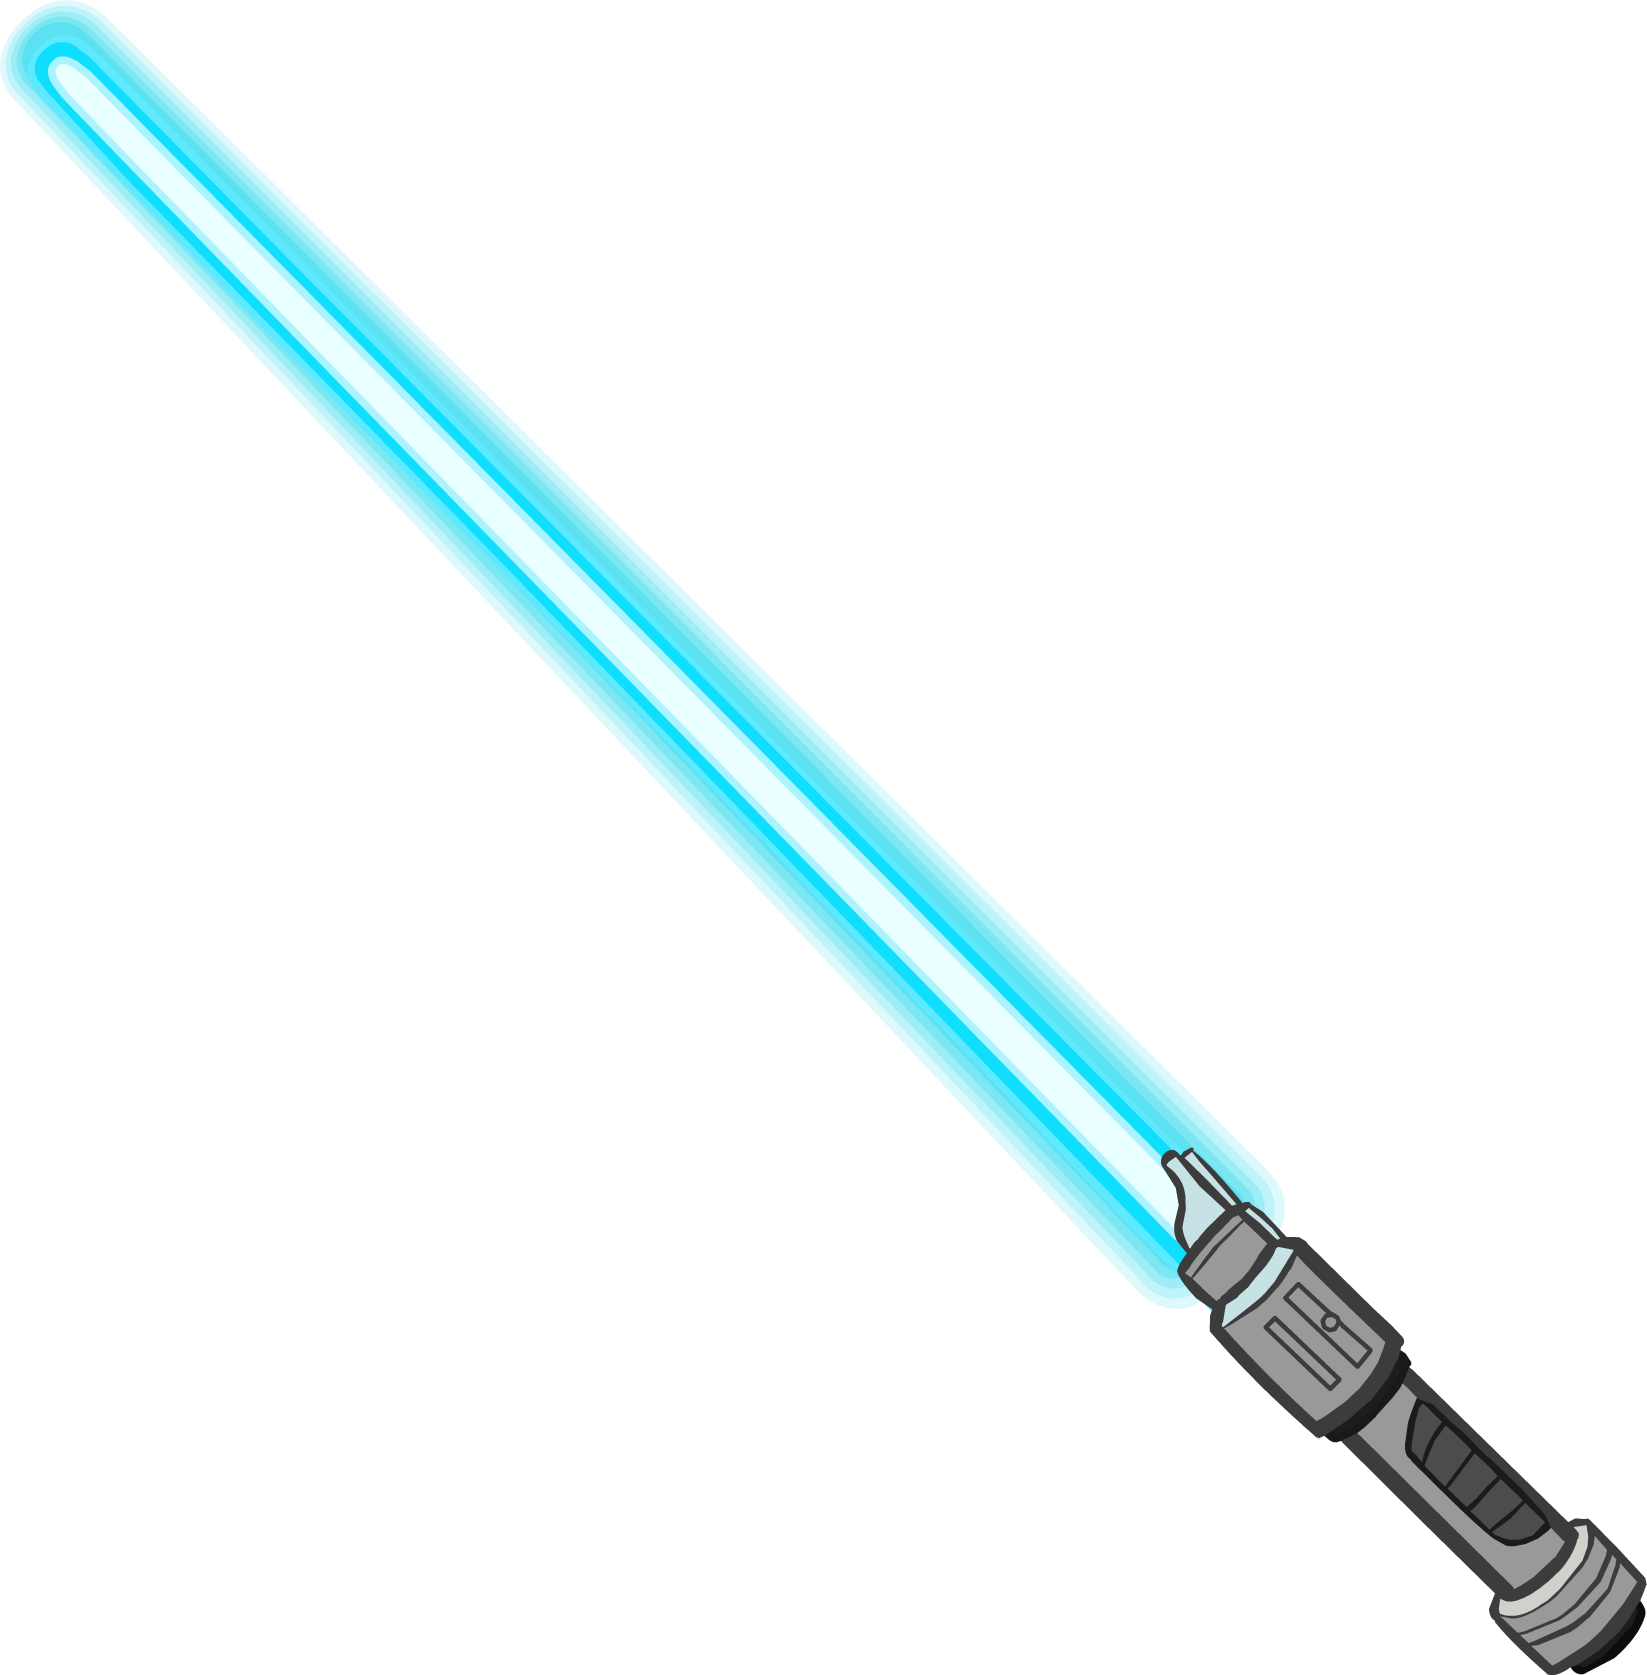 Star wars clipart lightsaber picture freeuse Star Wars Lightsaber Clipart at GetDrawings.com | Free for personal ... picture freeuse